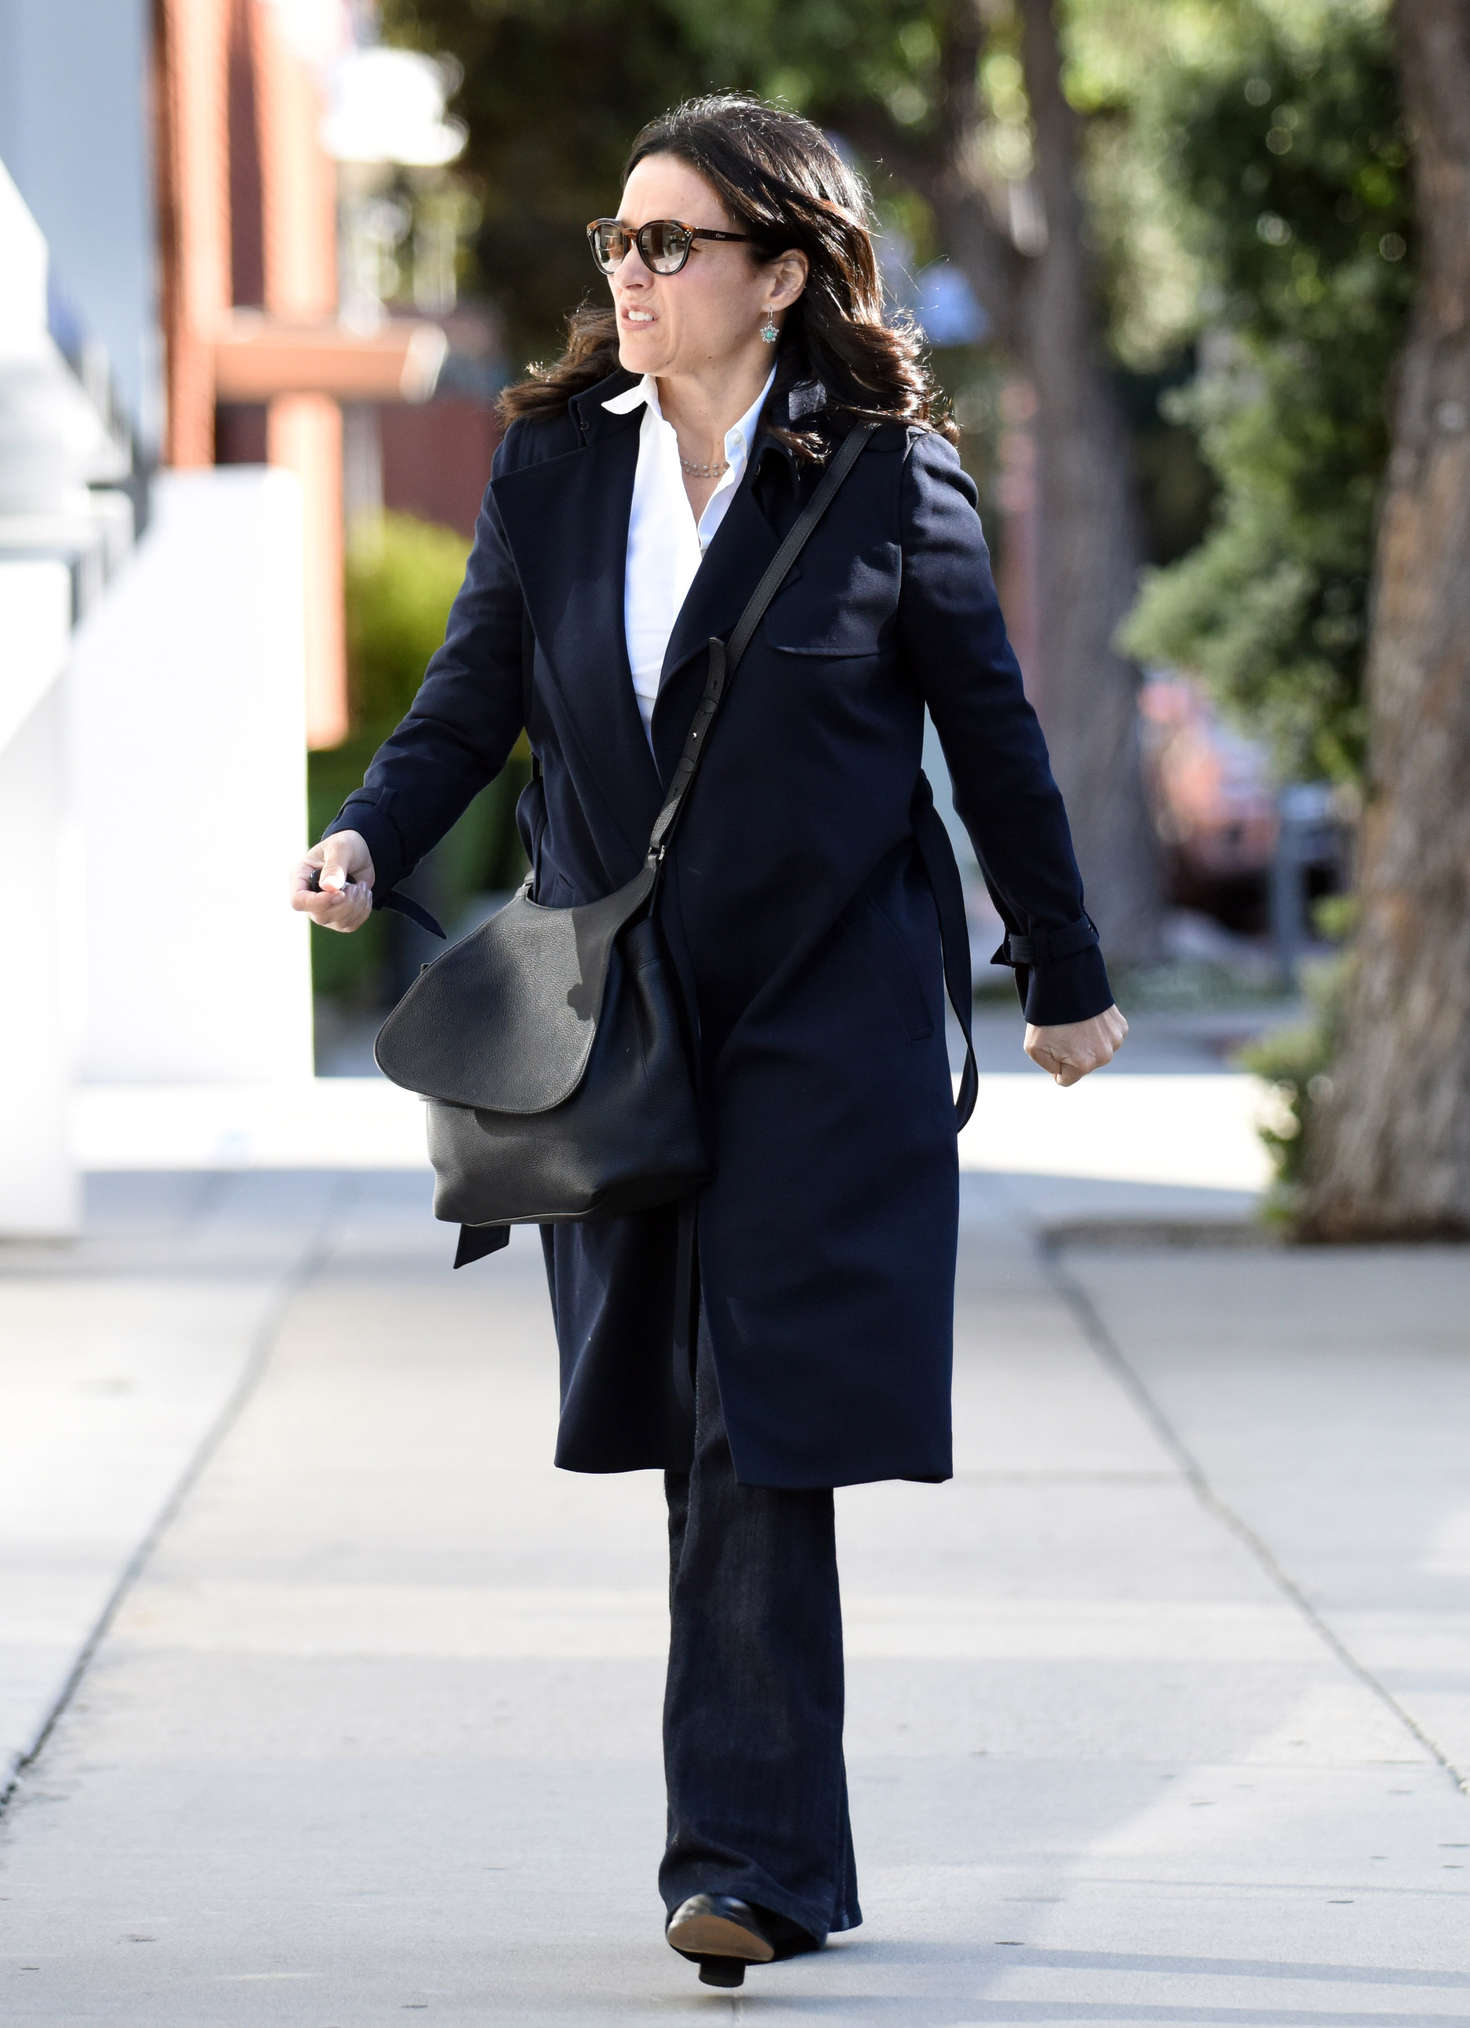 Julia Louis Dreyfus in Black Coat out in Los Angeles